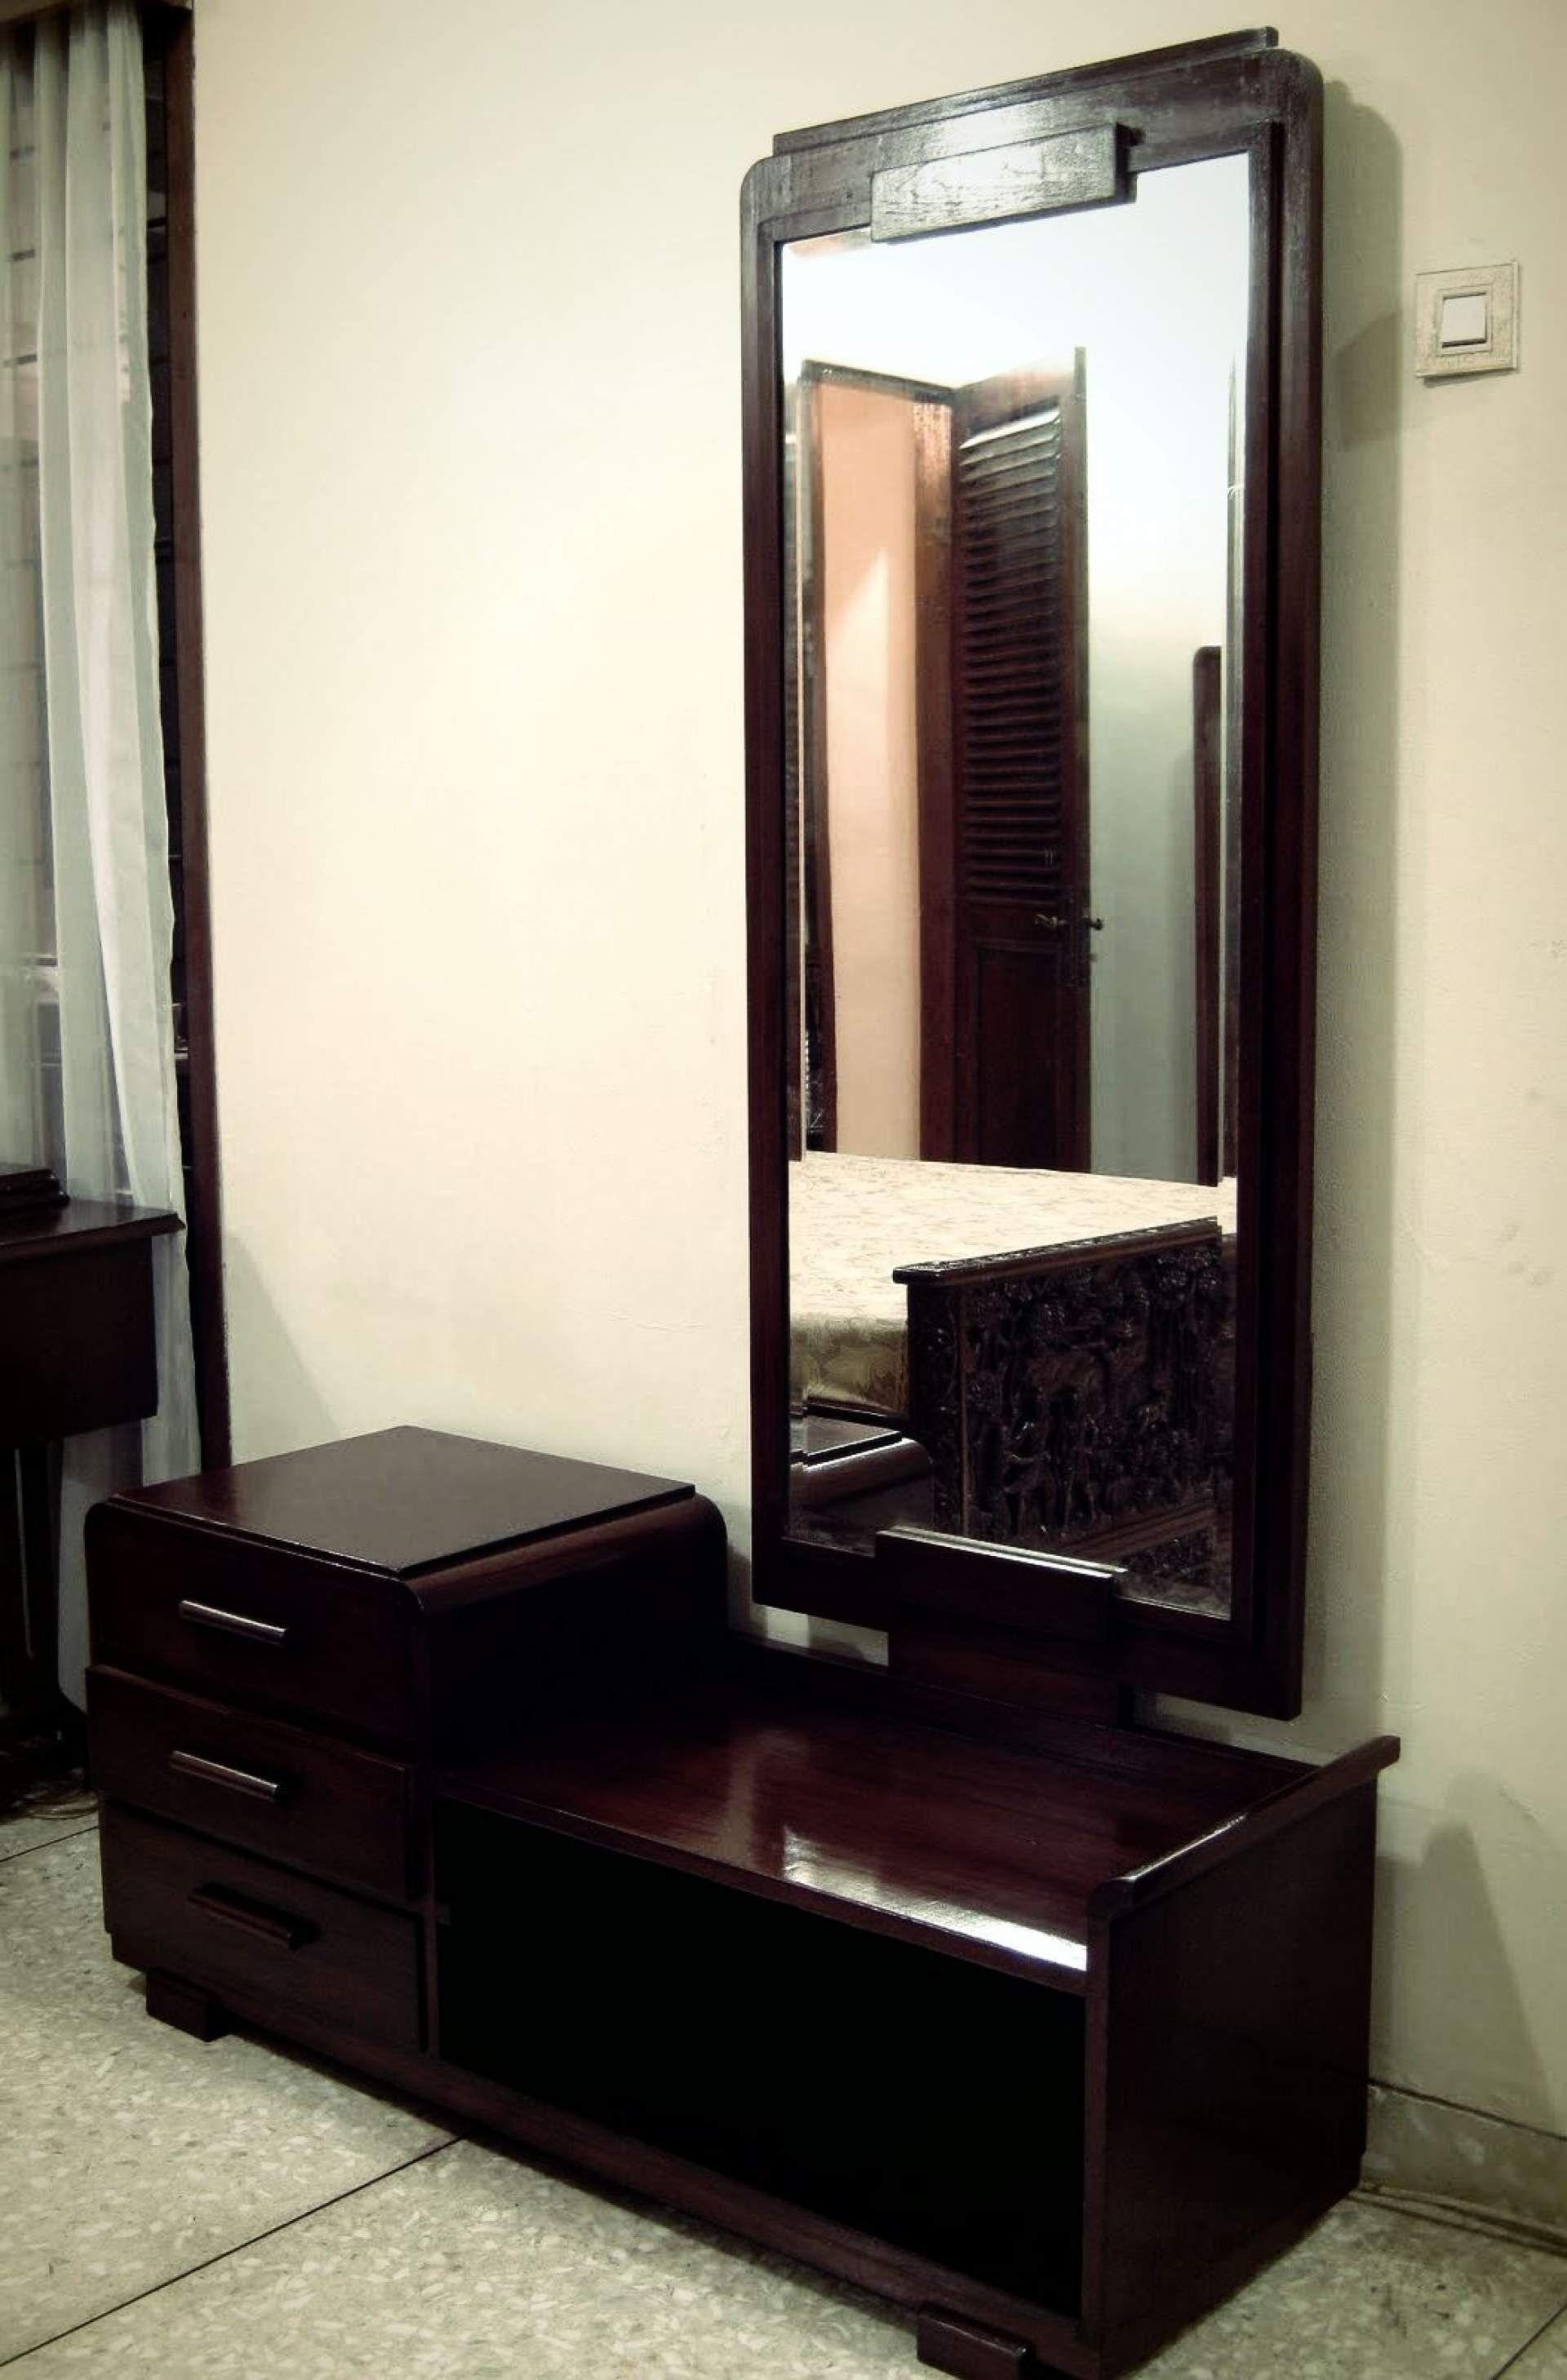 Dressing Table Mirror Design Dressing Table Design Modern Dressing Table Designs Bedroom Dressing Table